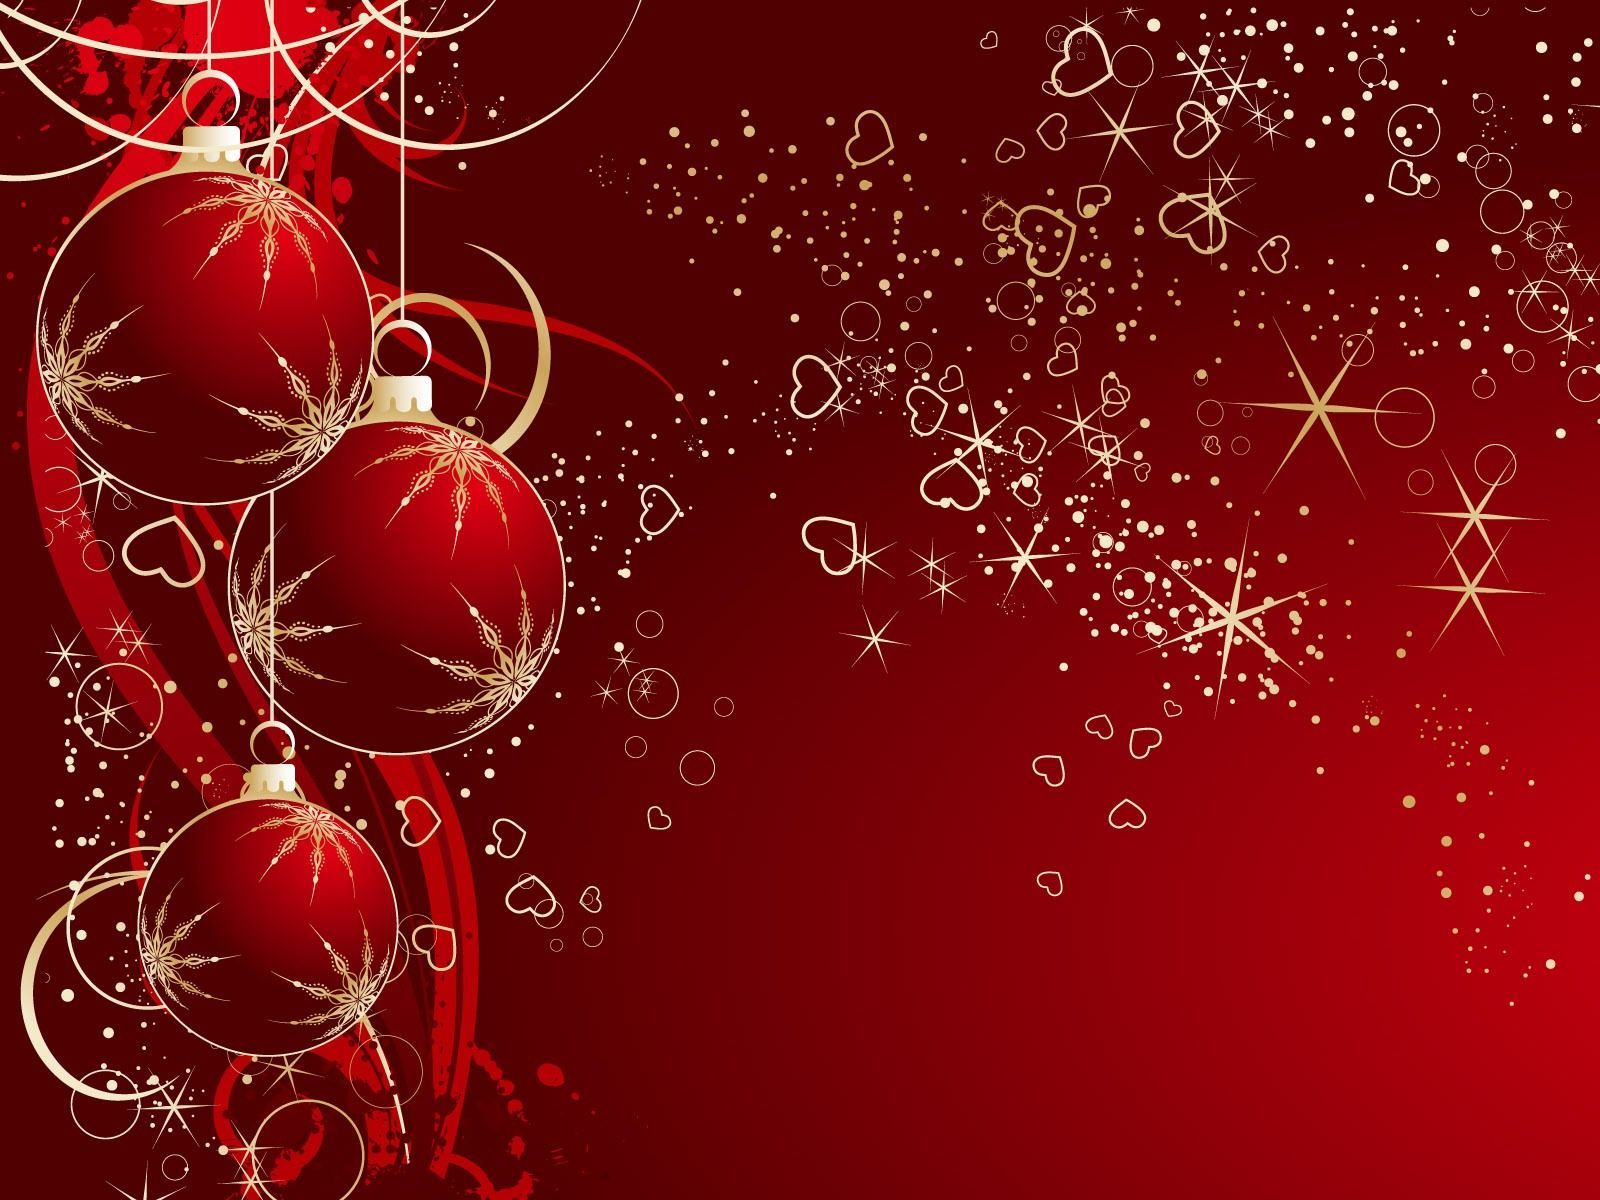 free 3 d christmas background tags background balls christmas hd natale sfondo desktop wallpaper